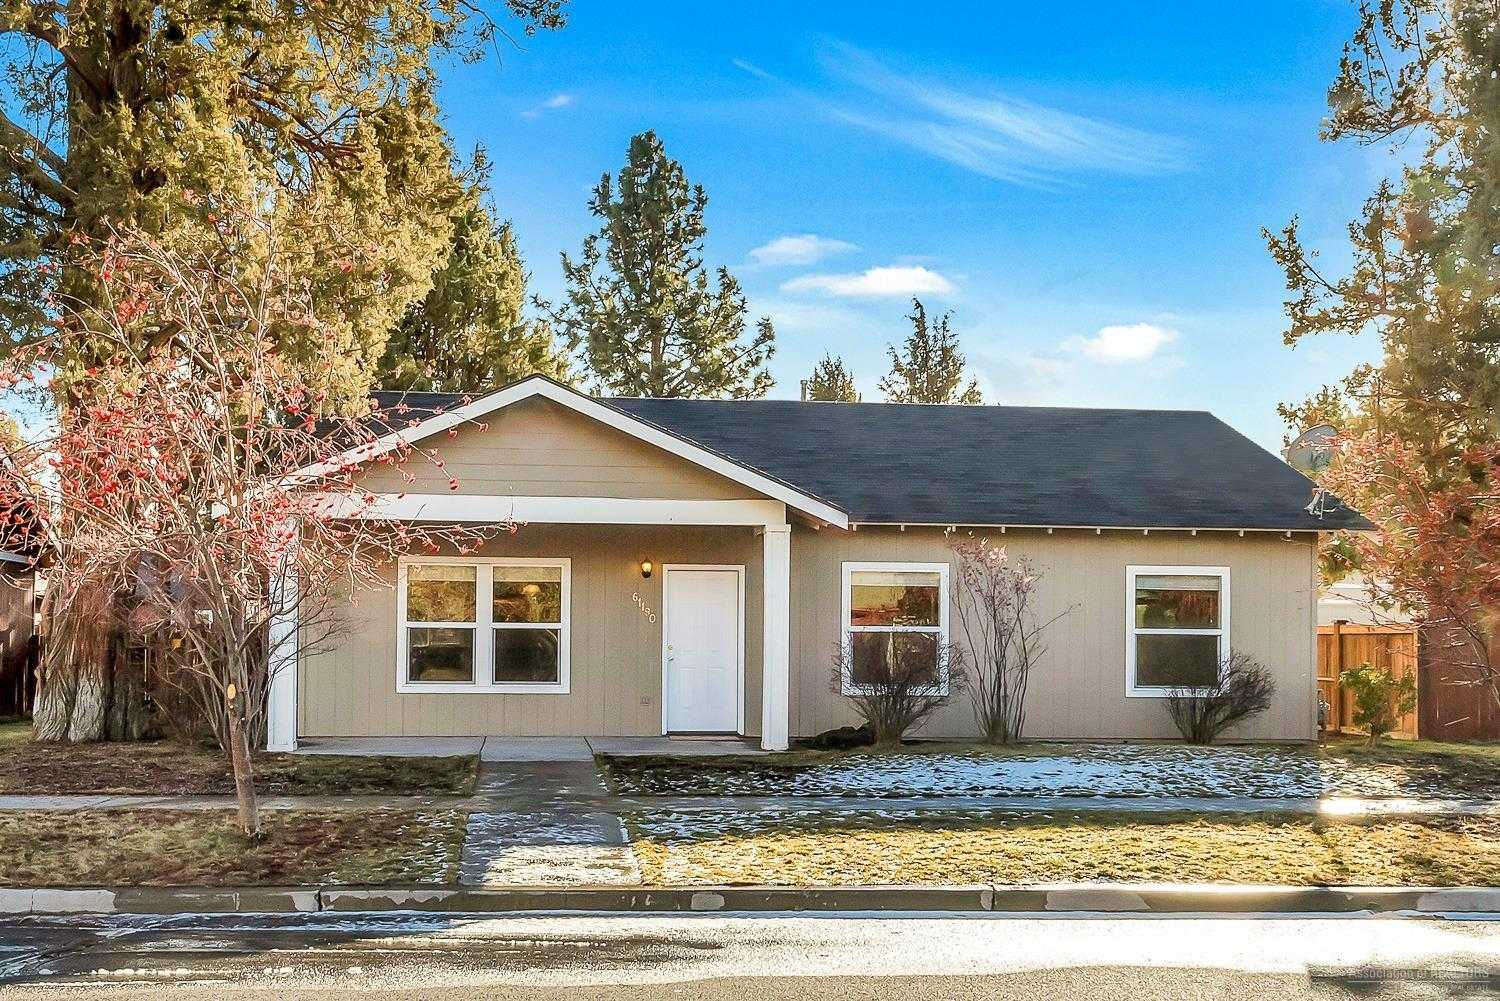 $299,000 - 3Br/2Ba -  for Sale in Bend